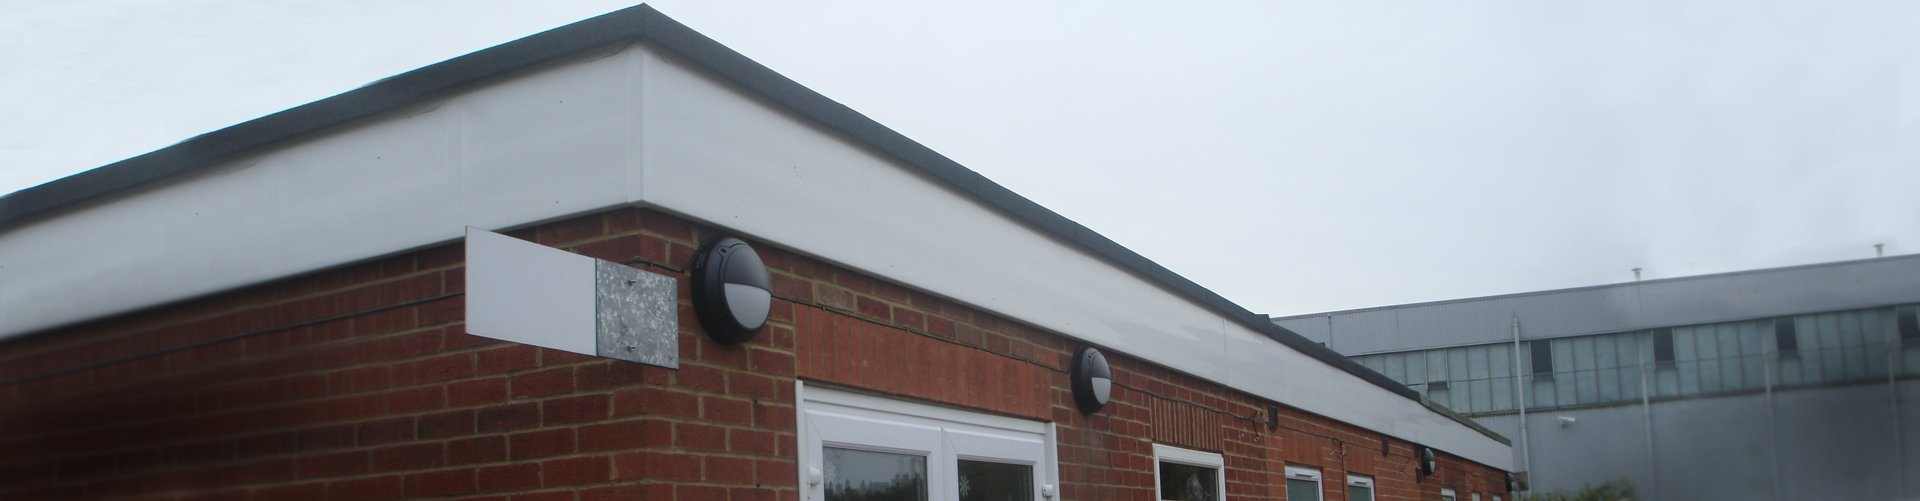 A building with a flat roof that has been worked on by Accurate Flat Roofing